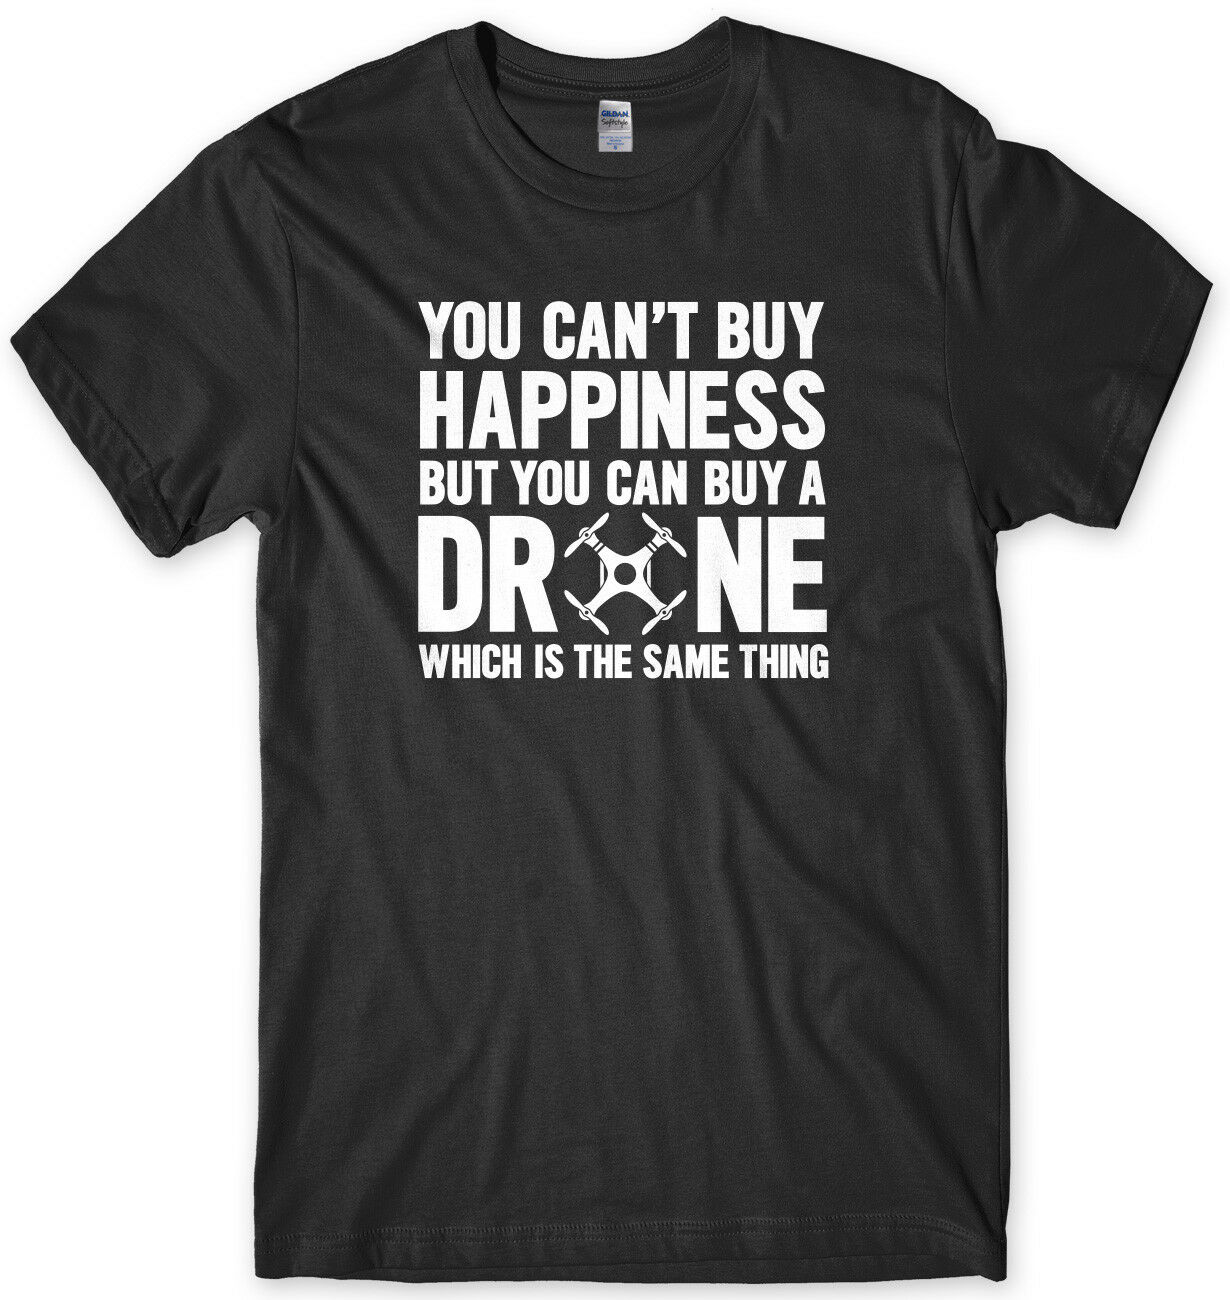 You Can't Buy Happiness But You Can Buy A Drone Same Thing Mens Funny T-Shirt image